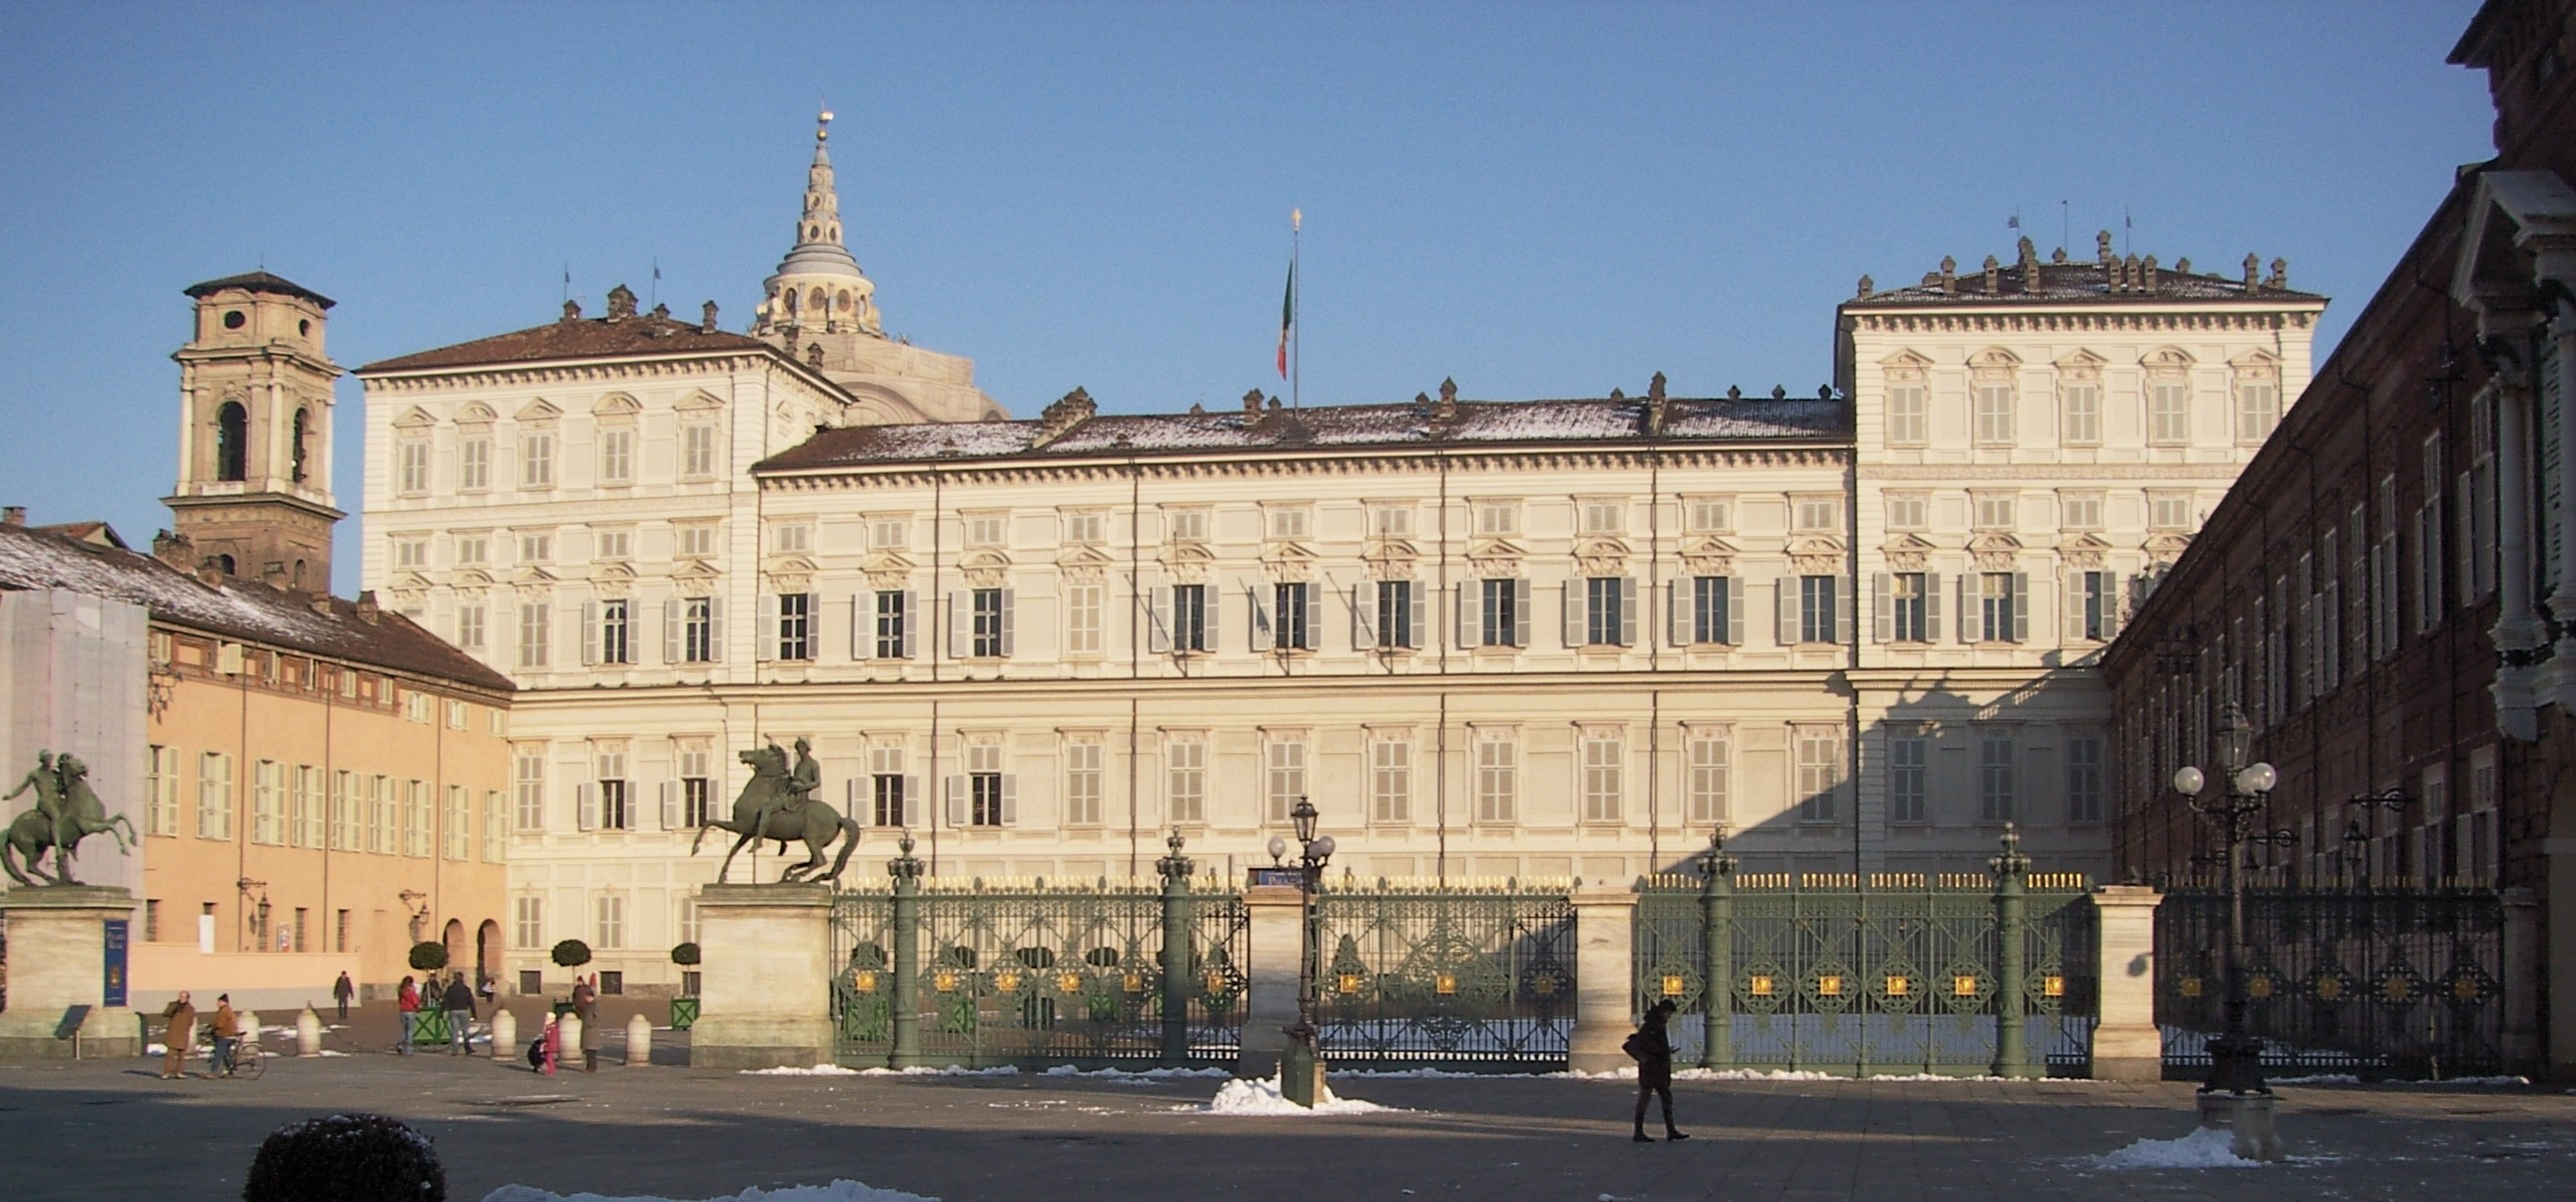 Tour nelle Residenze Sabaude - I parte: Palazzo Reale